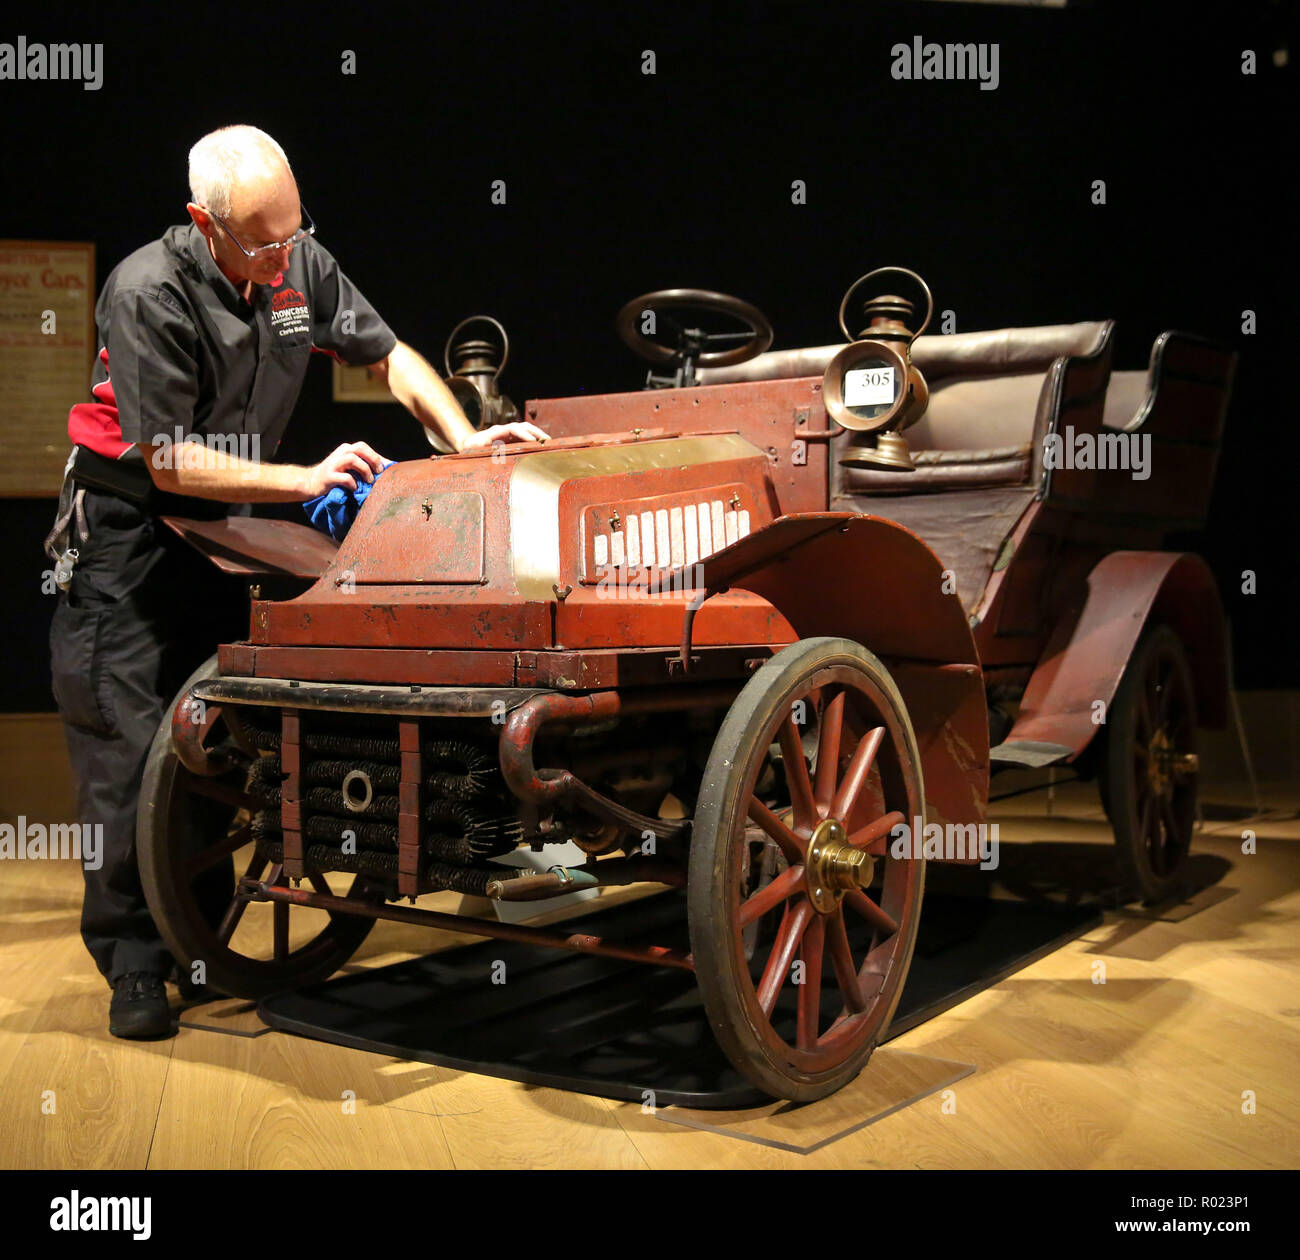 Bonhams, London, UK 1 Nov 2018 - A workman polishes 1904 Cadillac Model A 6½HP rear-entrance Tonneau (est £ 65,000 - 75,000) Veteran motor cars on display at Bonhams before setting off to take part in the oldest motoring event in the world, The London to Brighton Run on Sunday 4 November.  Credit: Dinendra Haria/Alamy Live News - Stock Image